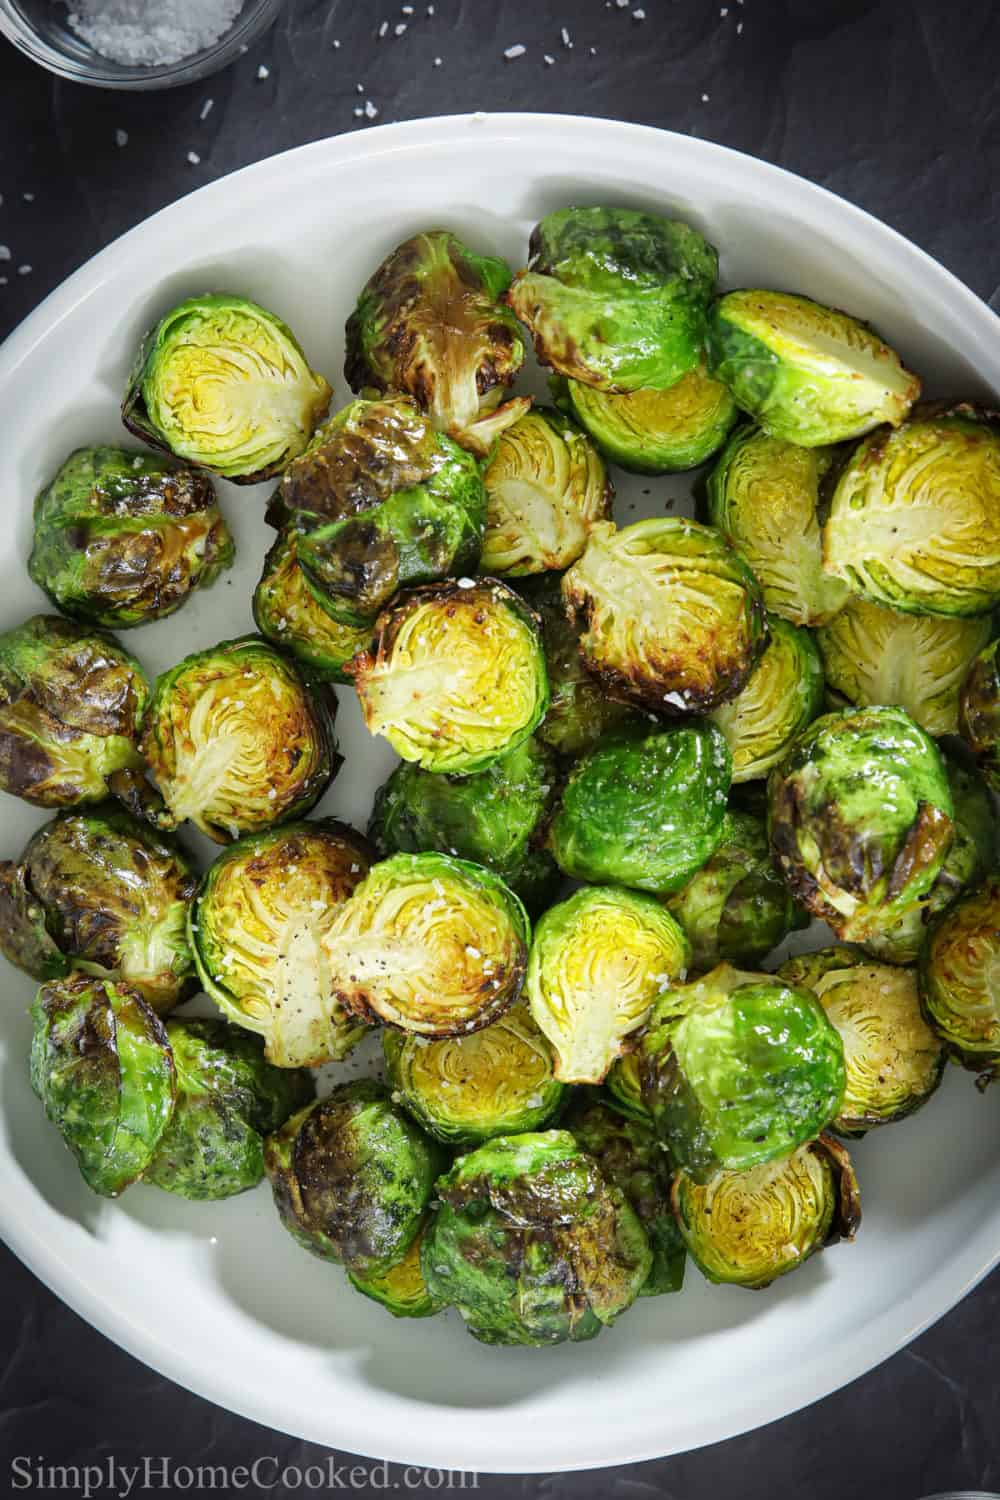 White plate of brussels sprout halves.